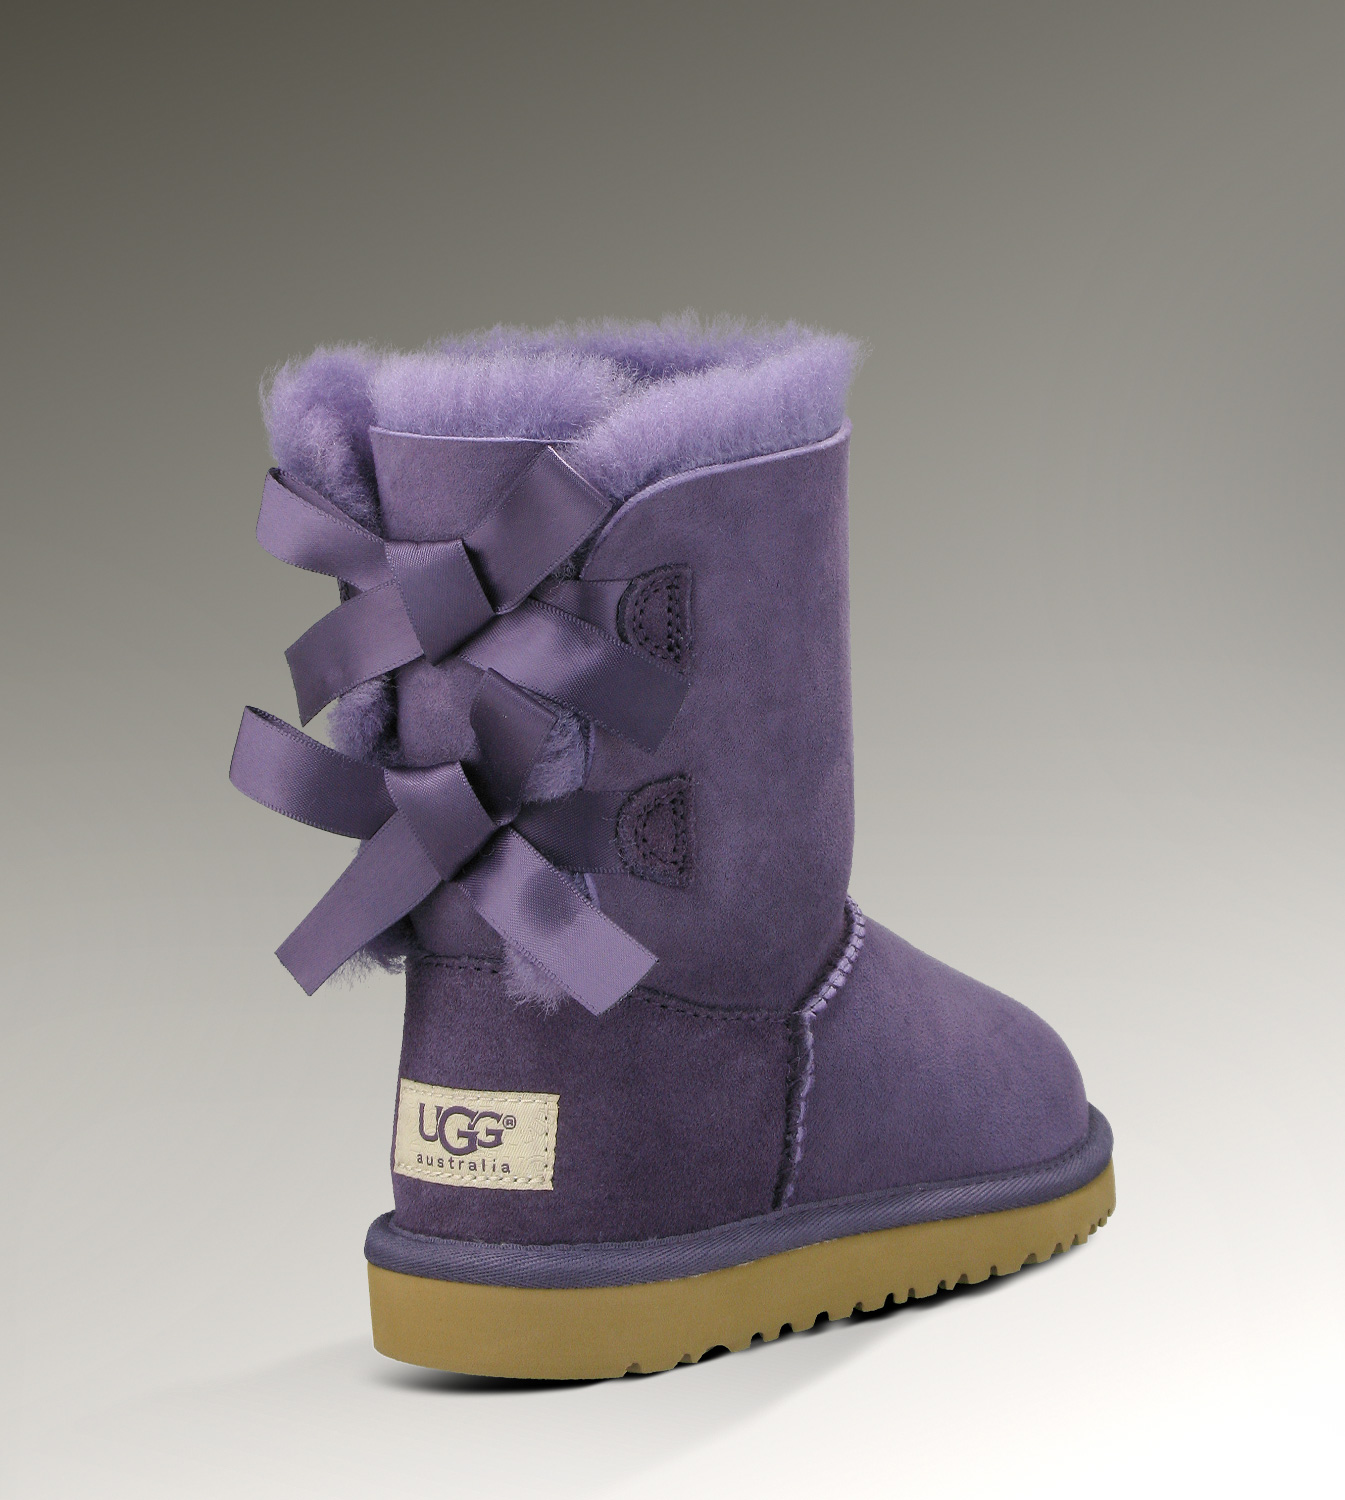 UGG Bailey Bow 1002954 Purple Boots